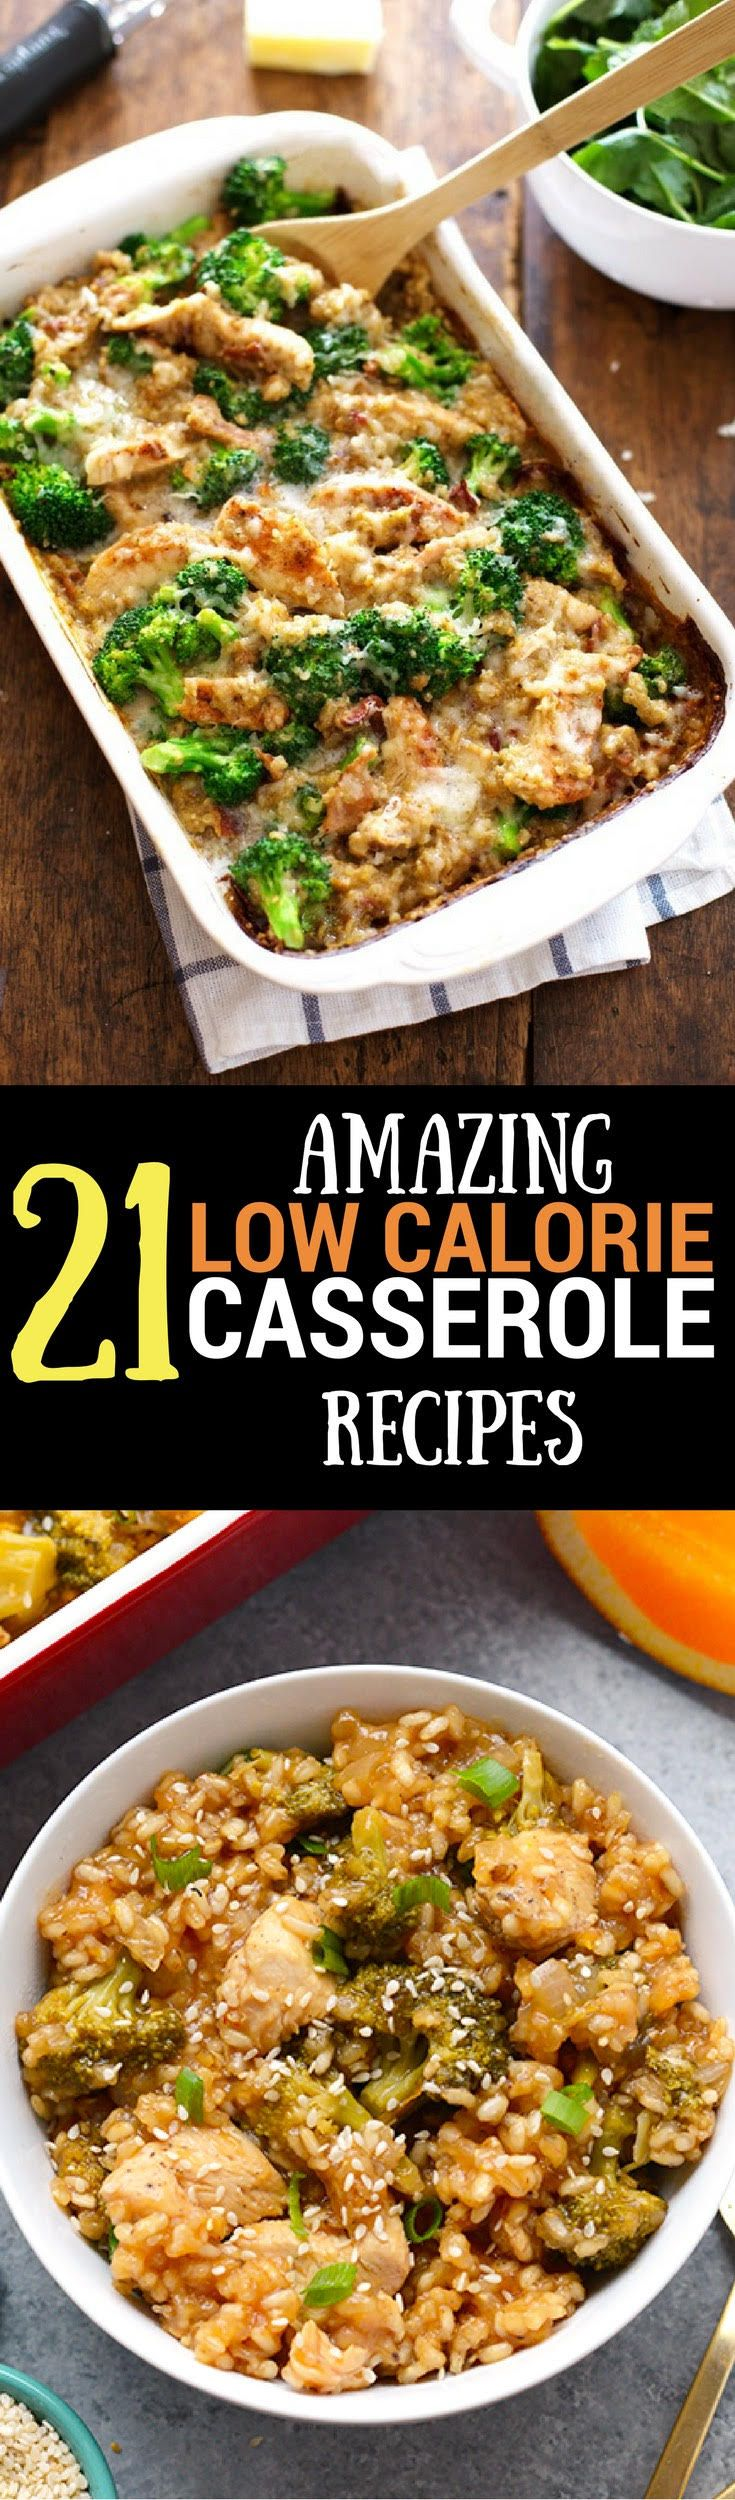 21 Low Calorie Casserole Recipes